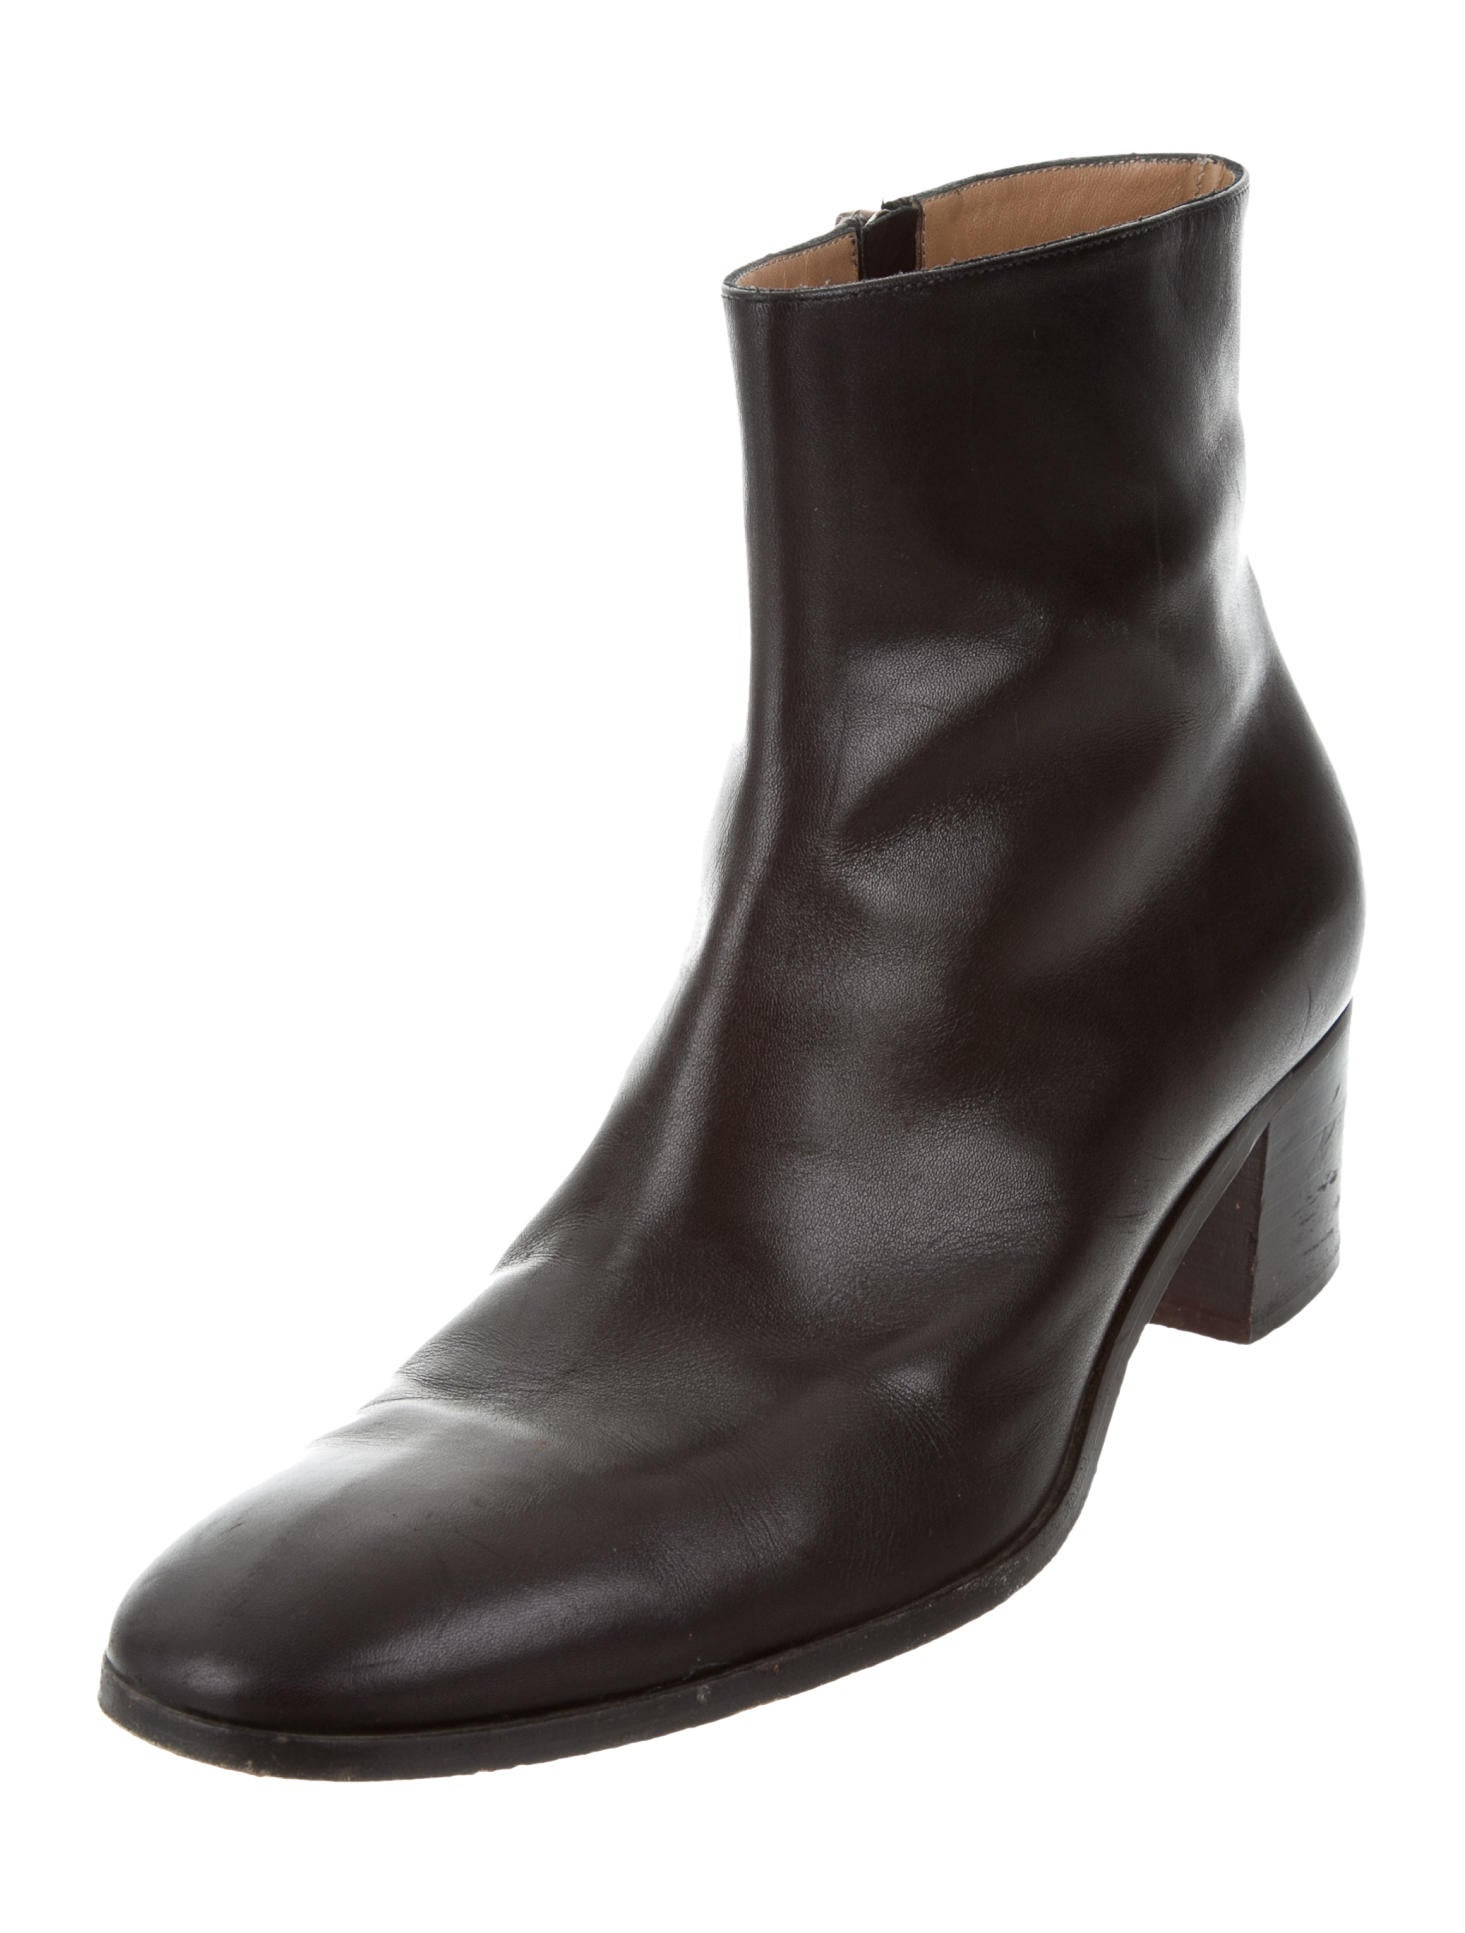 christian louboutin aoussam leather boots shoes